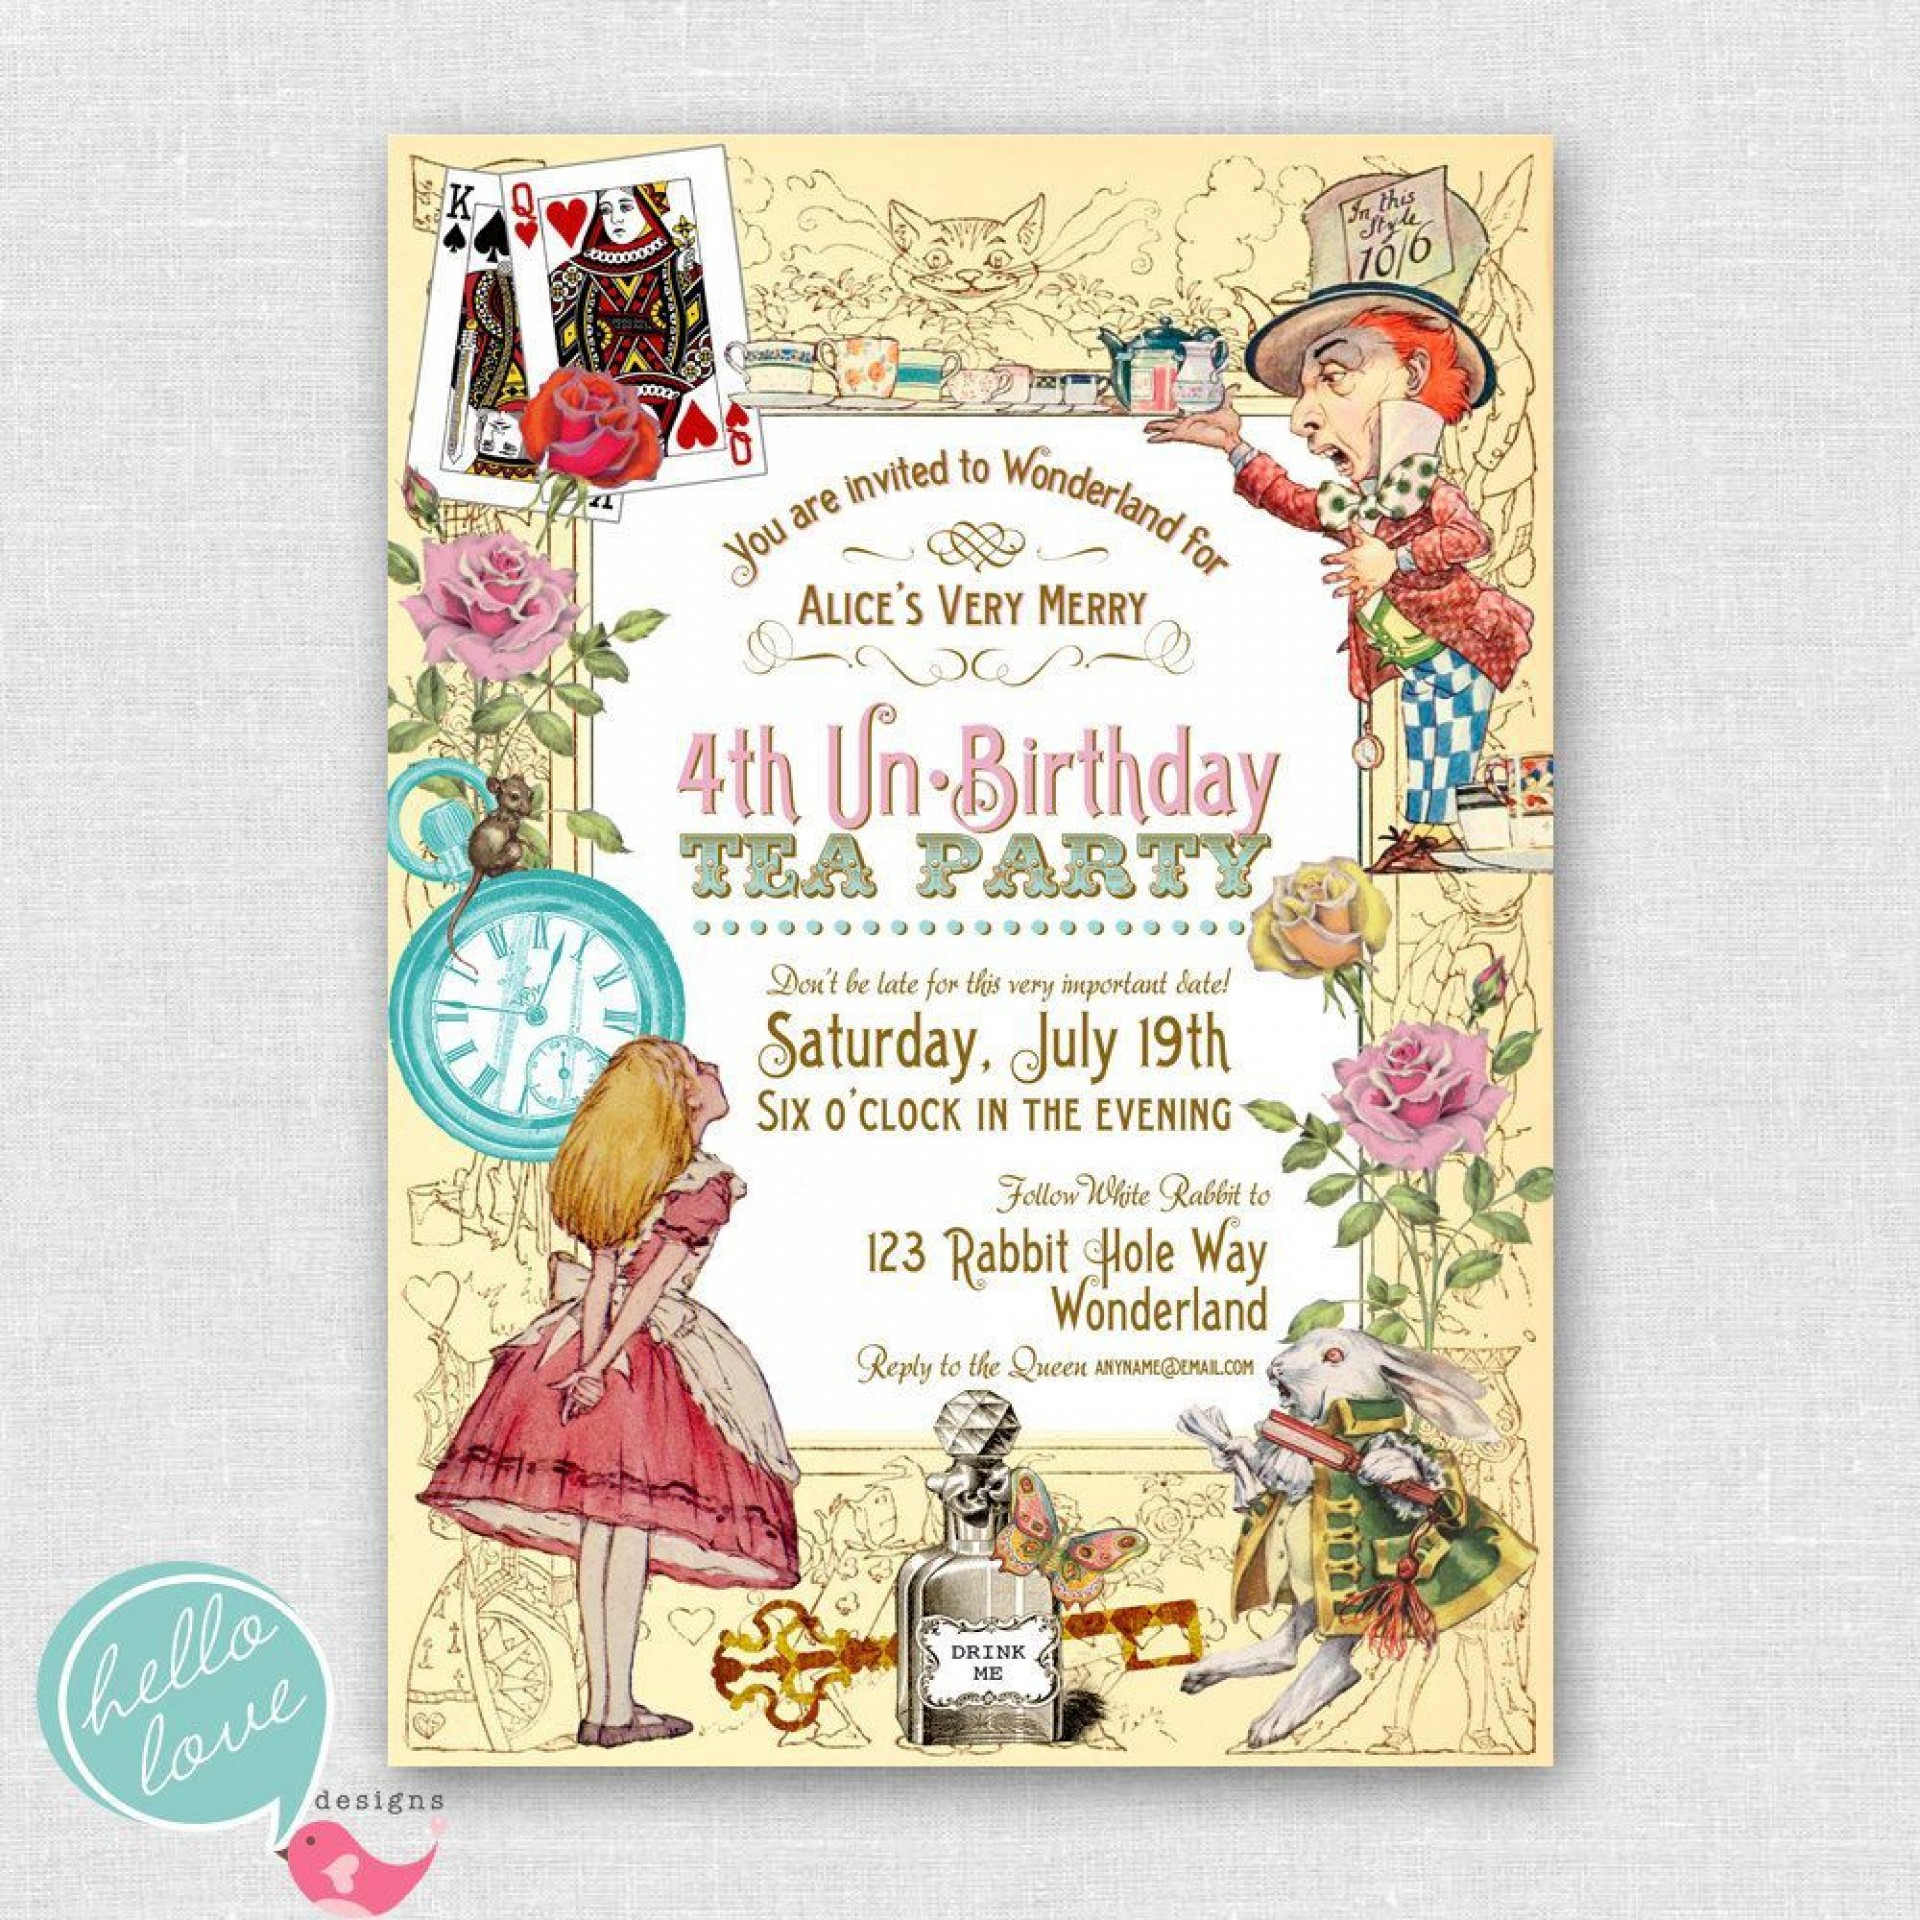 003 Exceptional Alice In Wonderland Invitation Template Example  Templates Wedding Birthday Free Tea Party1920